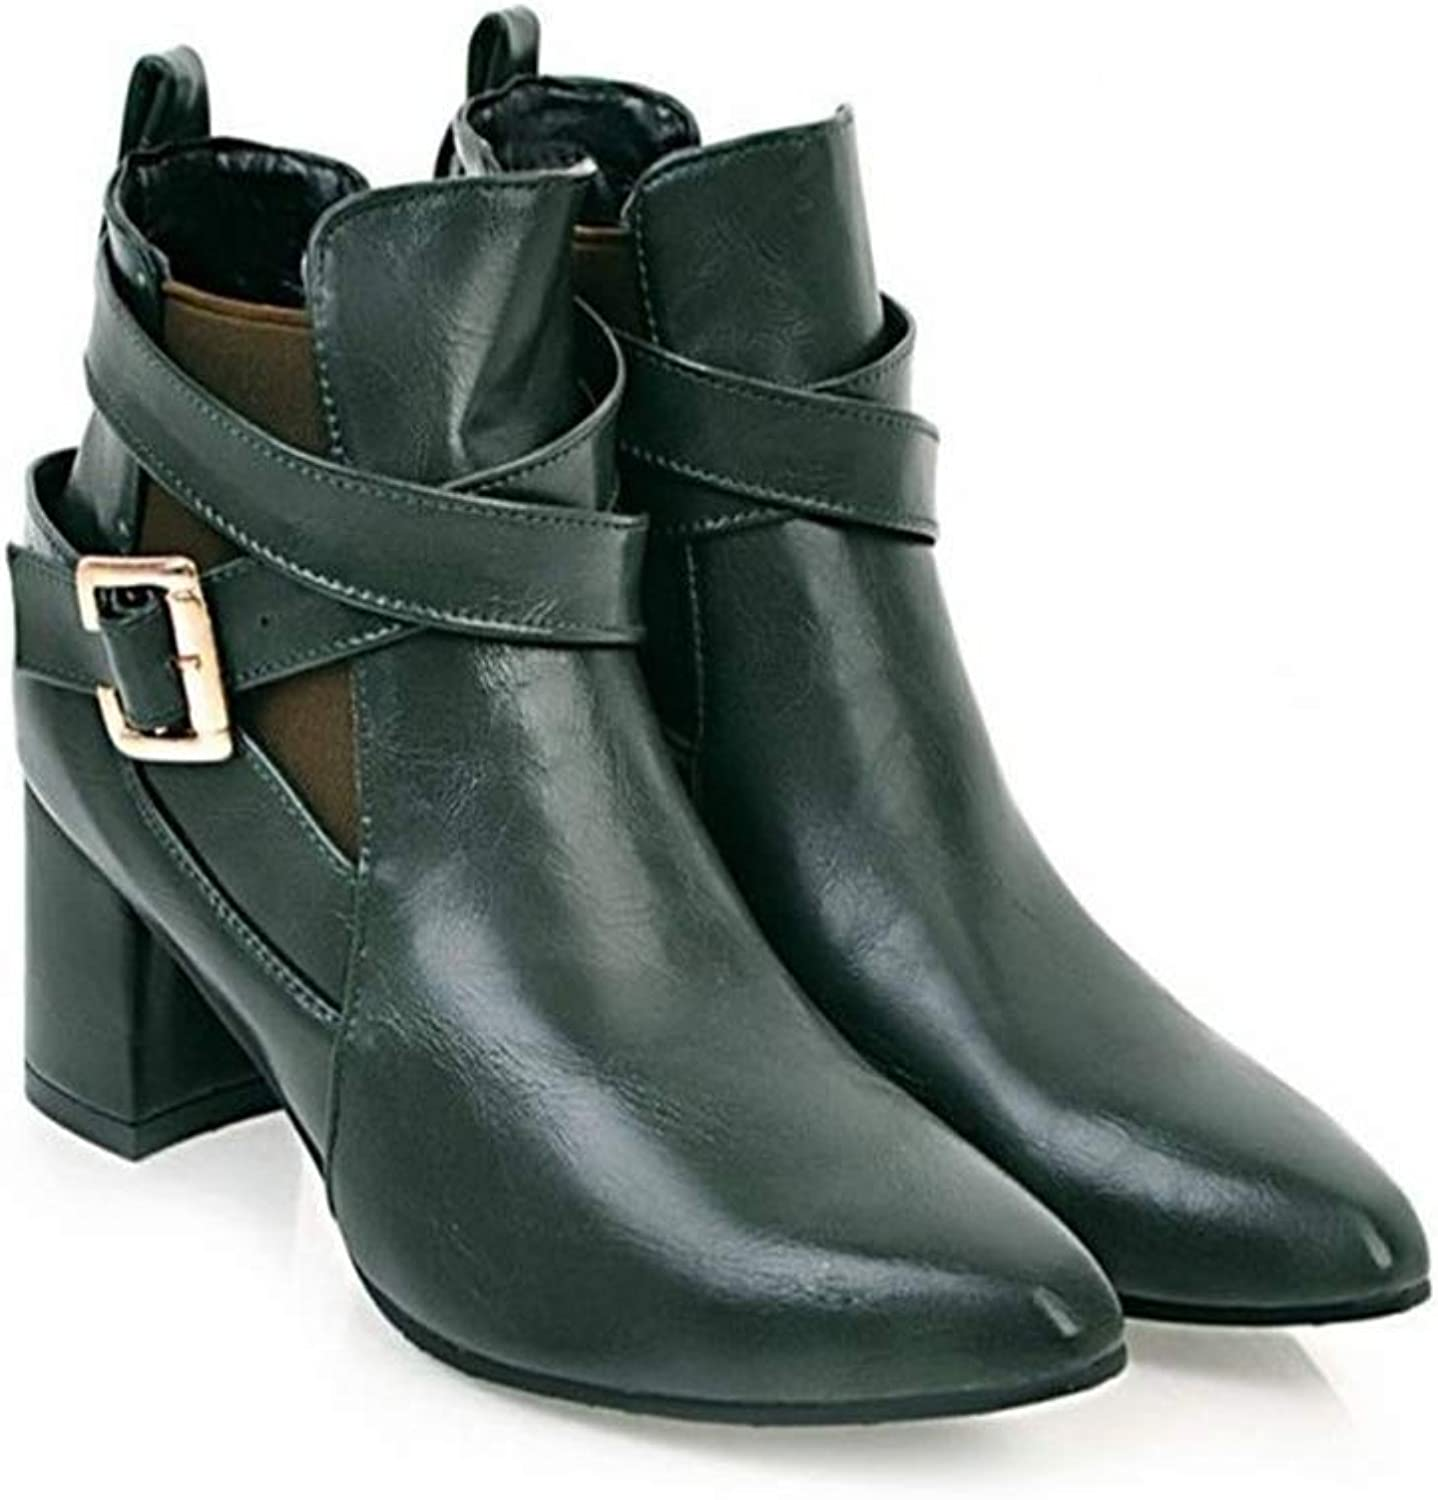 FORTUN Simple Ankle Boots Women's Thick Bare Boots with Martin Boots